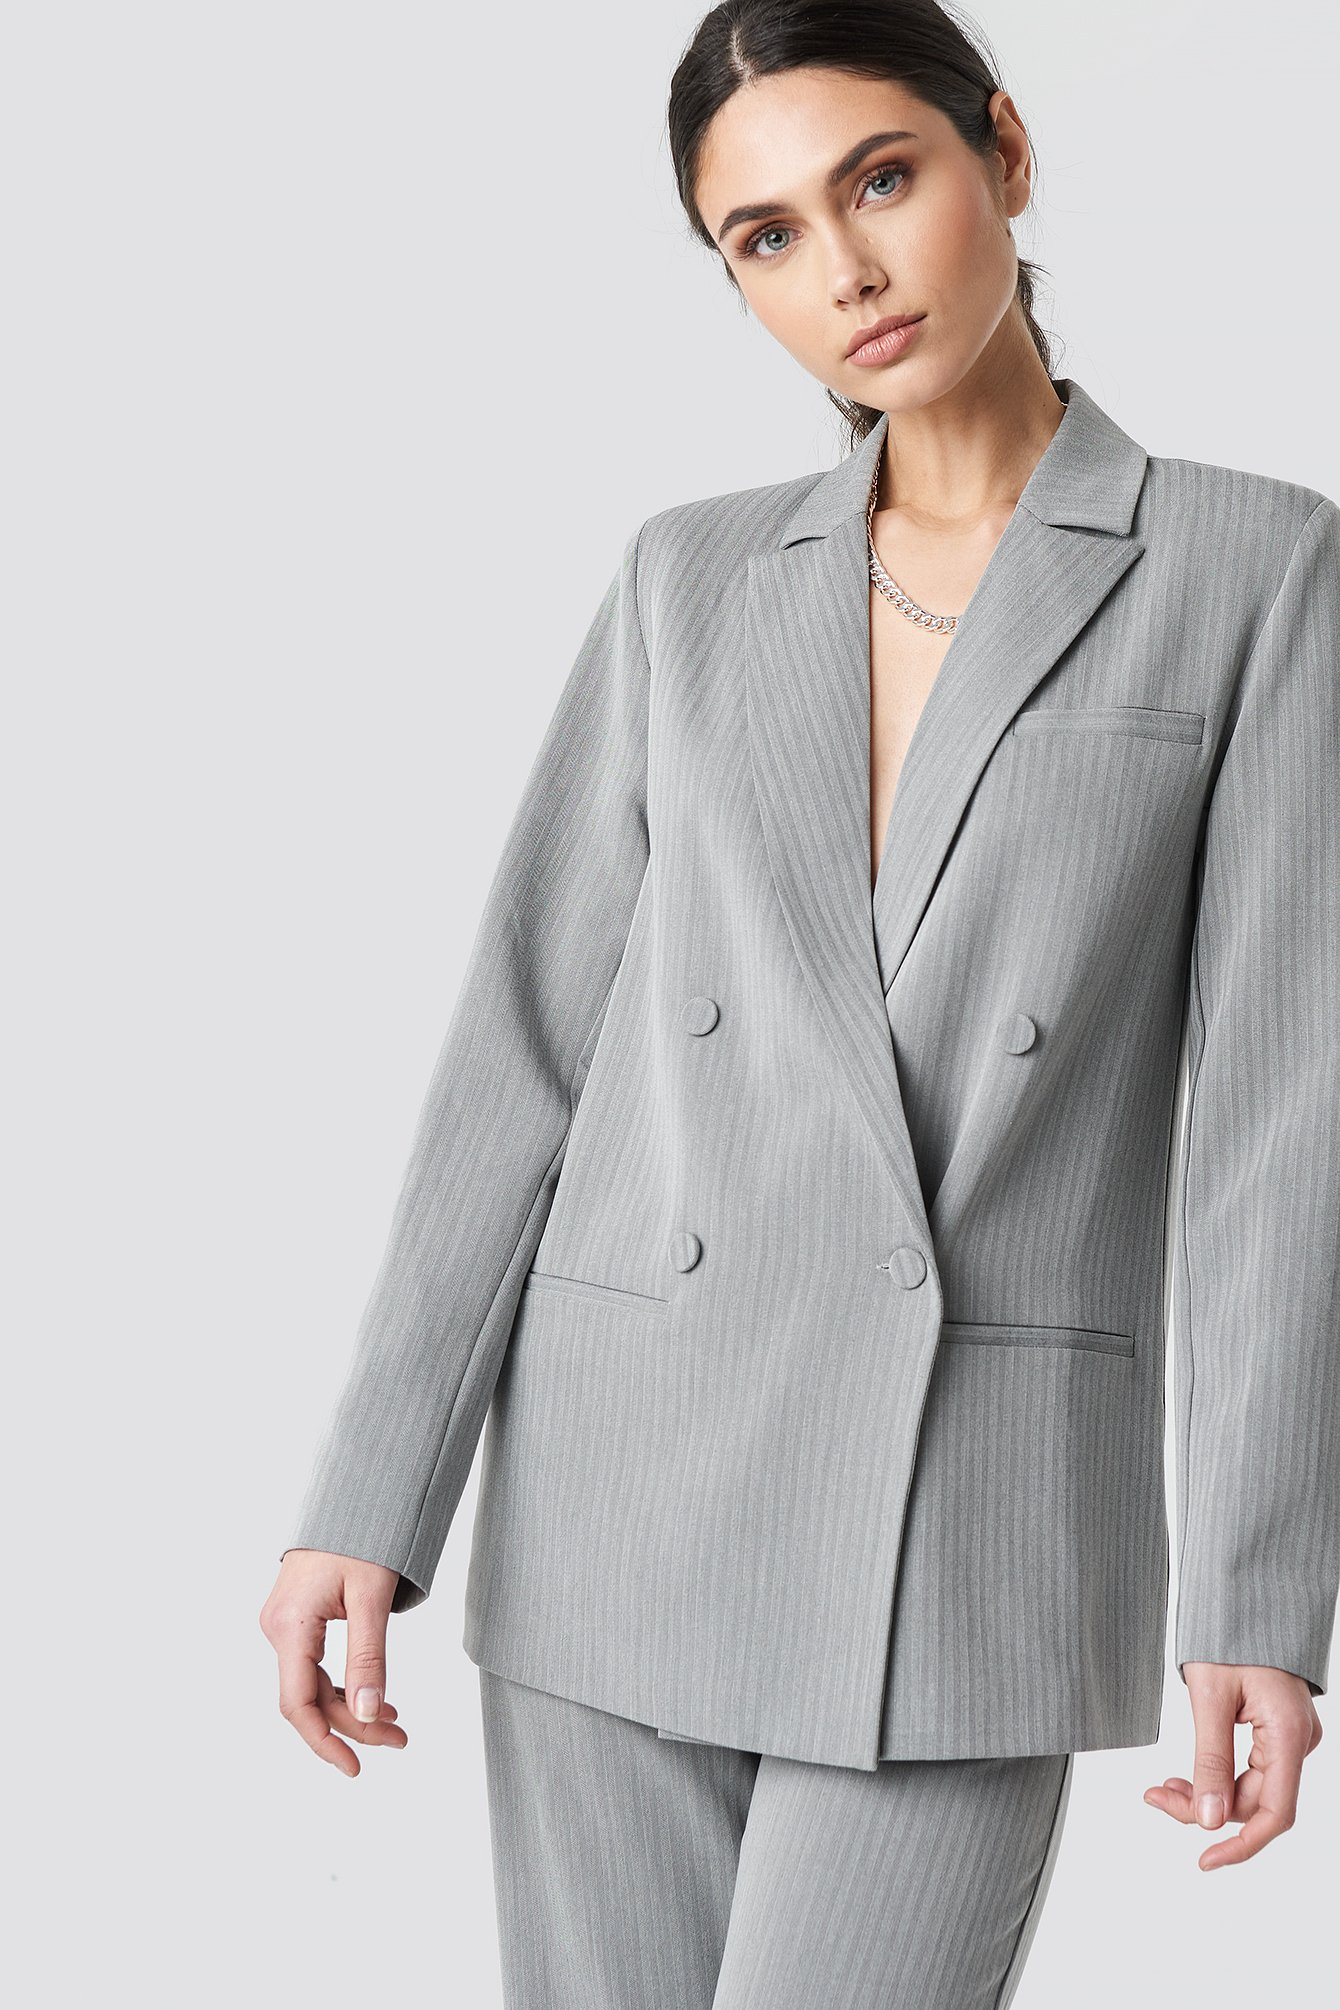 na-kd classic -  Two Tone Striped Double Breasted Blazer - Grey